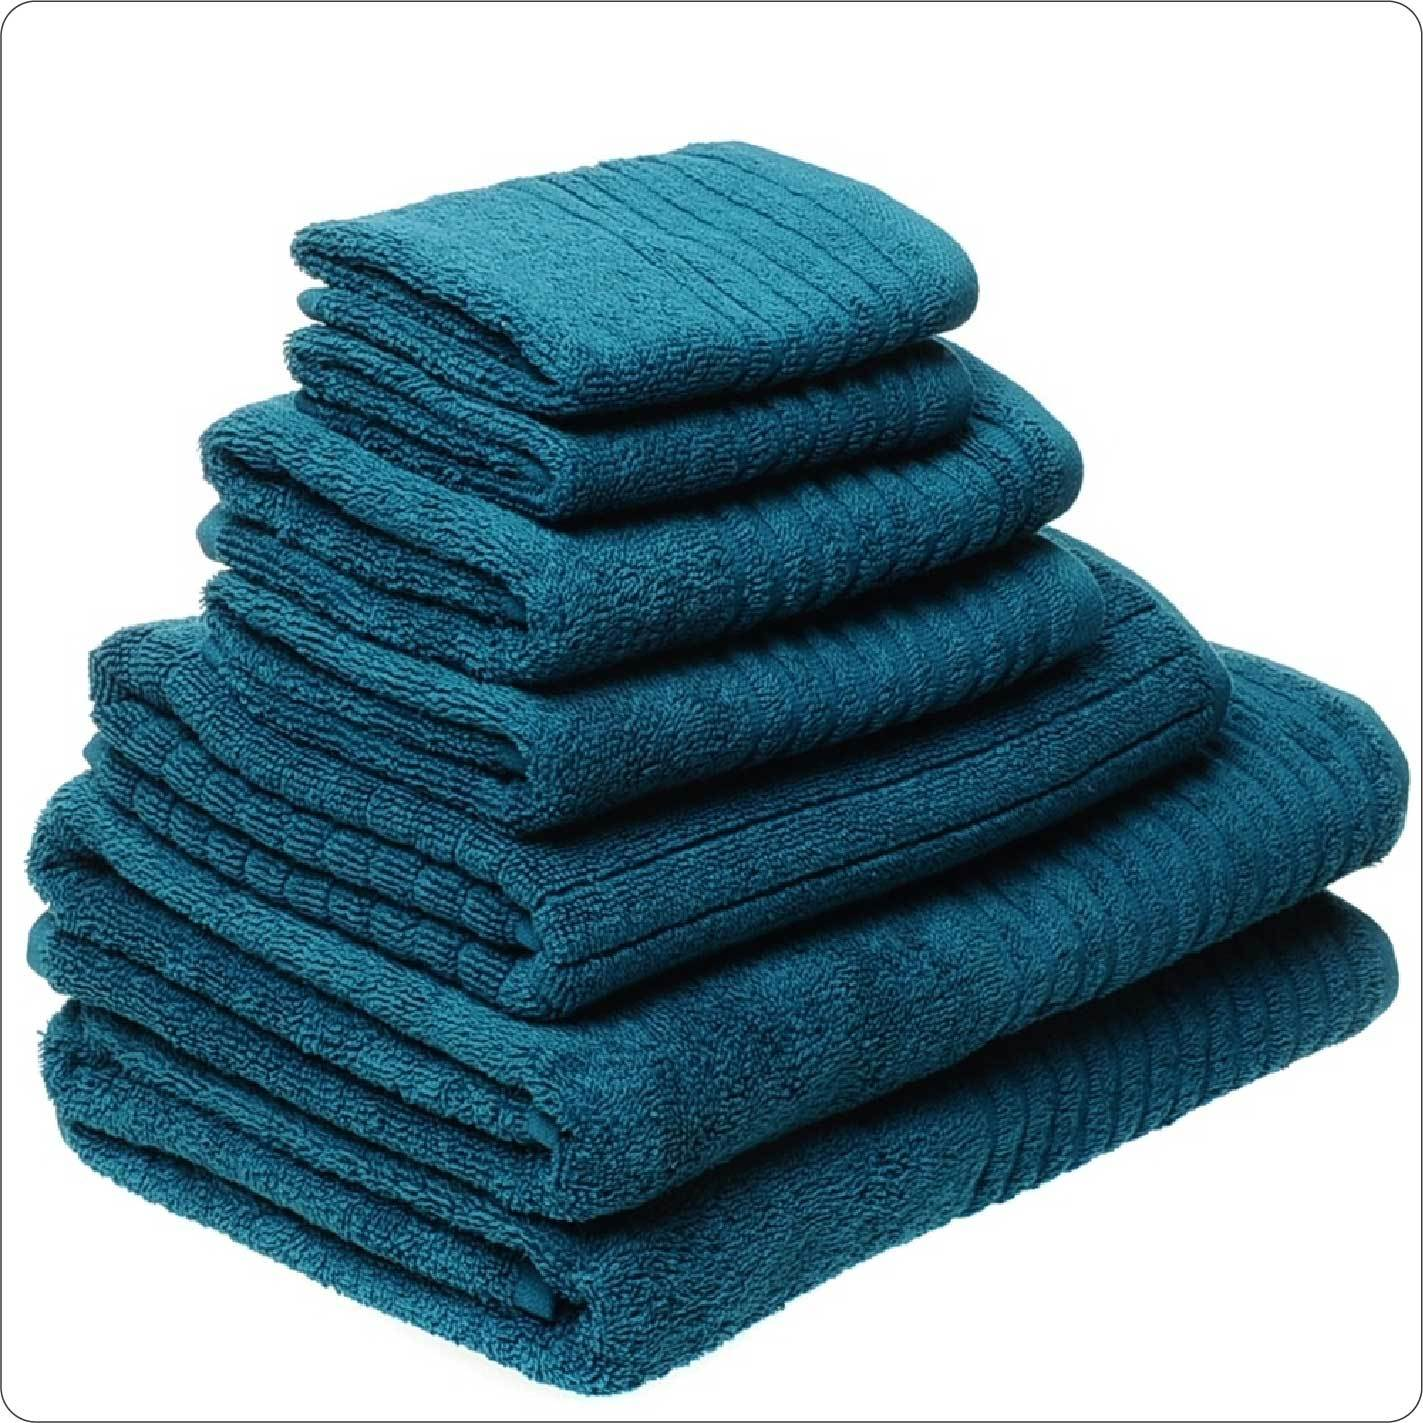 Organic Cotton Towel 7-Piece Set MARINE COLOUR